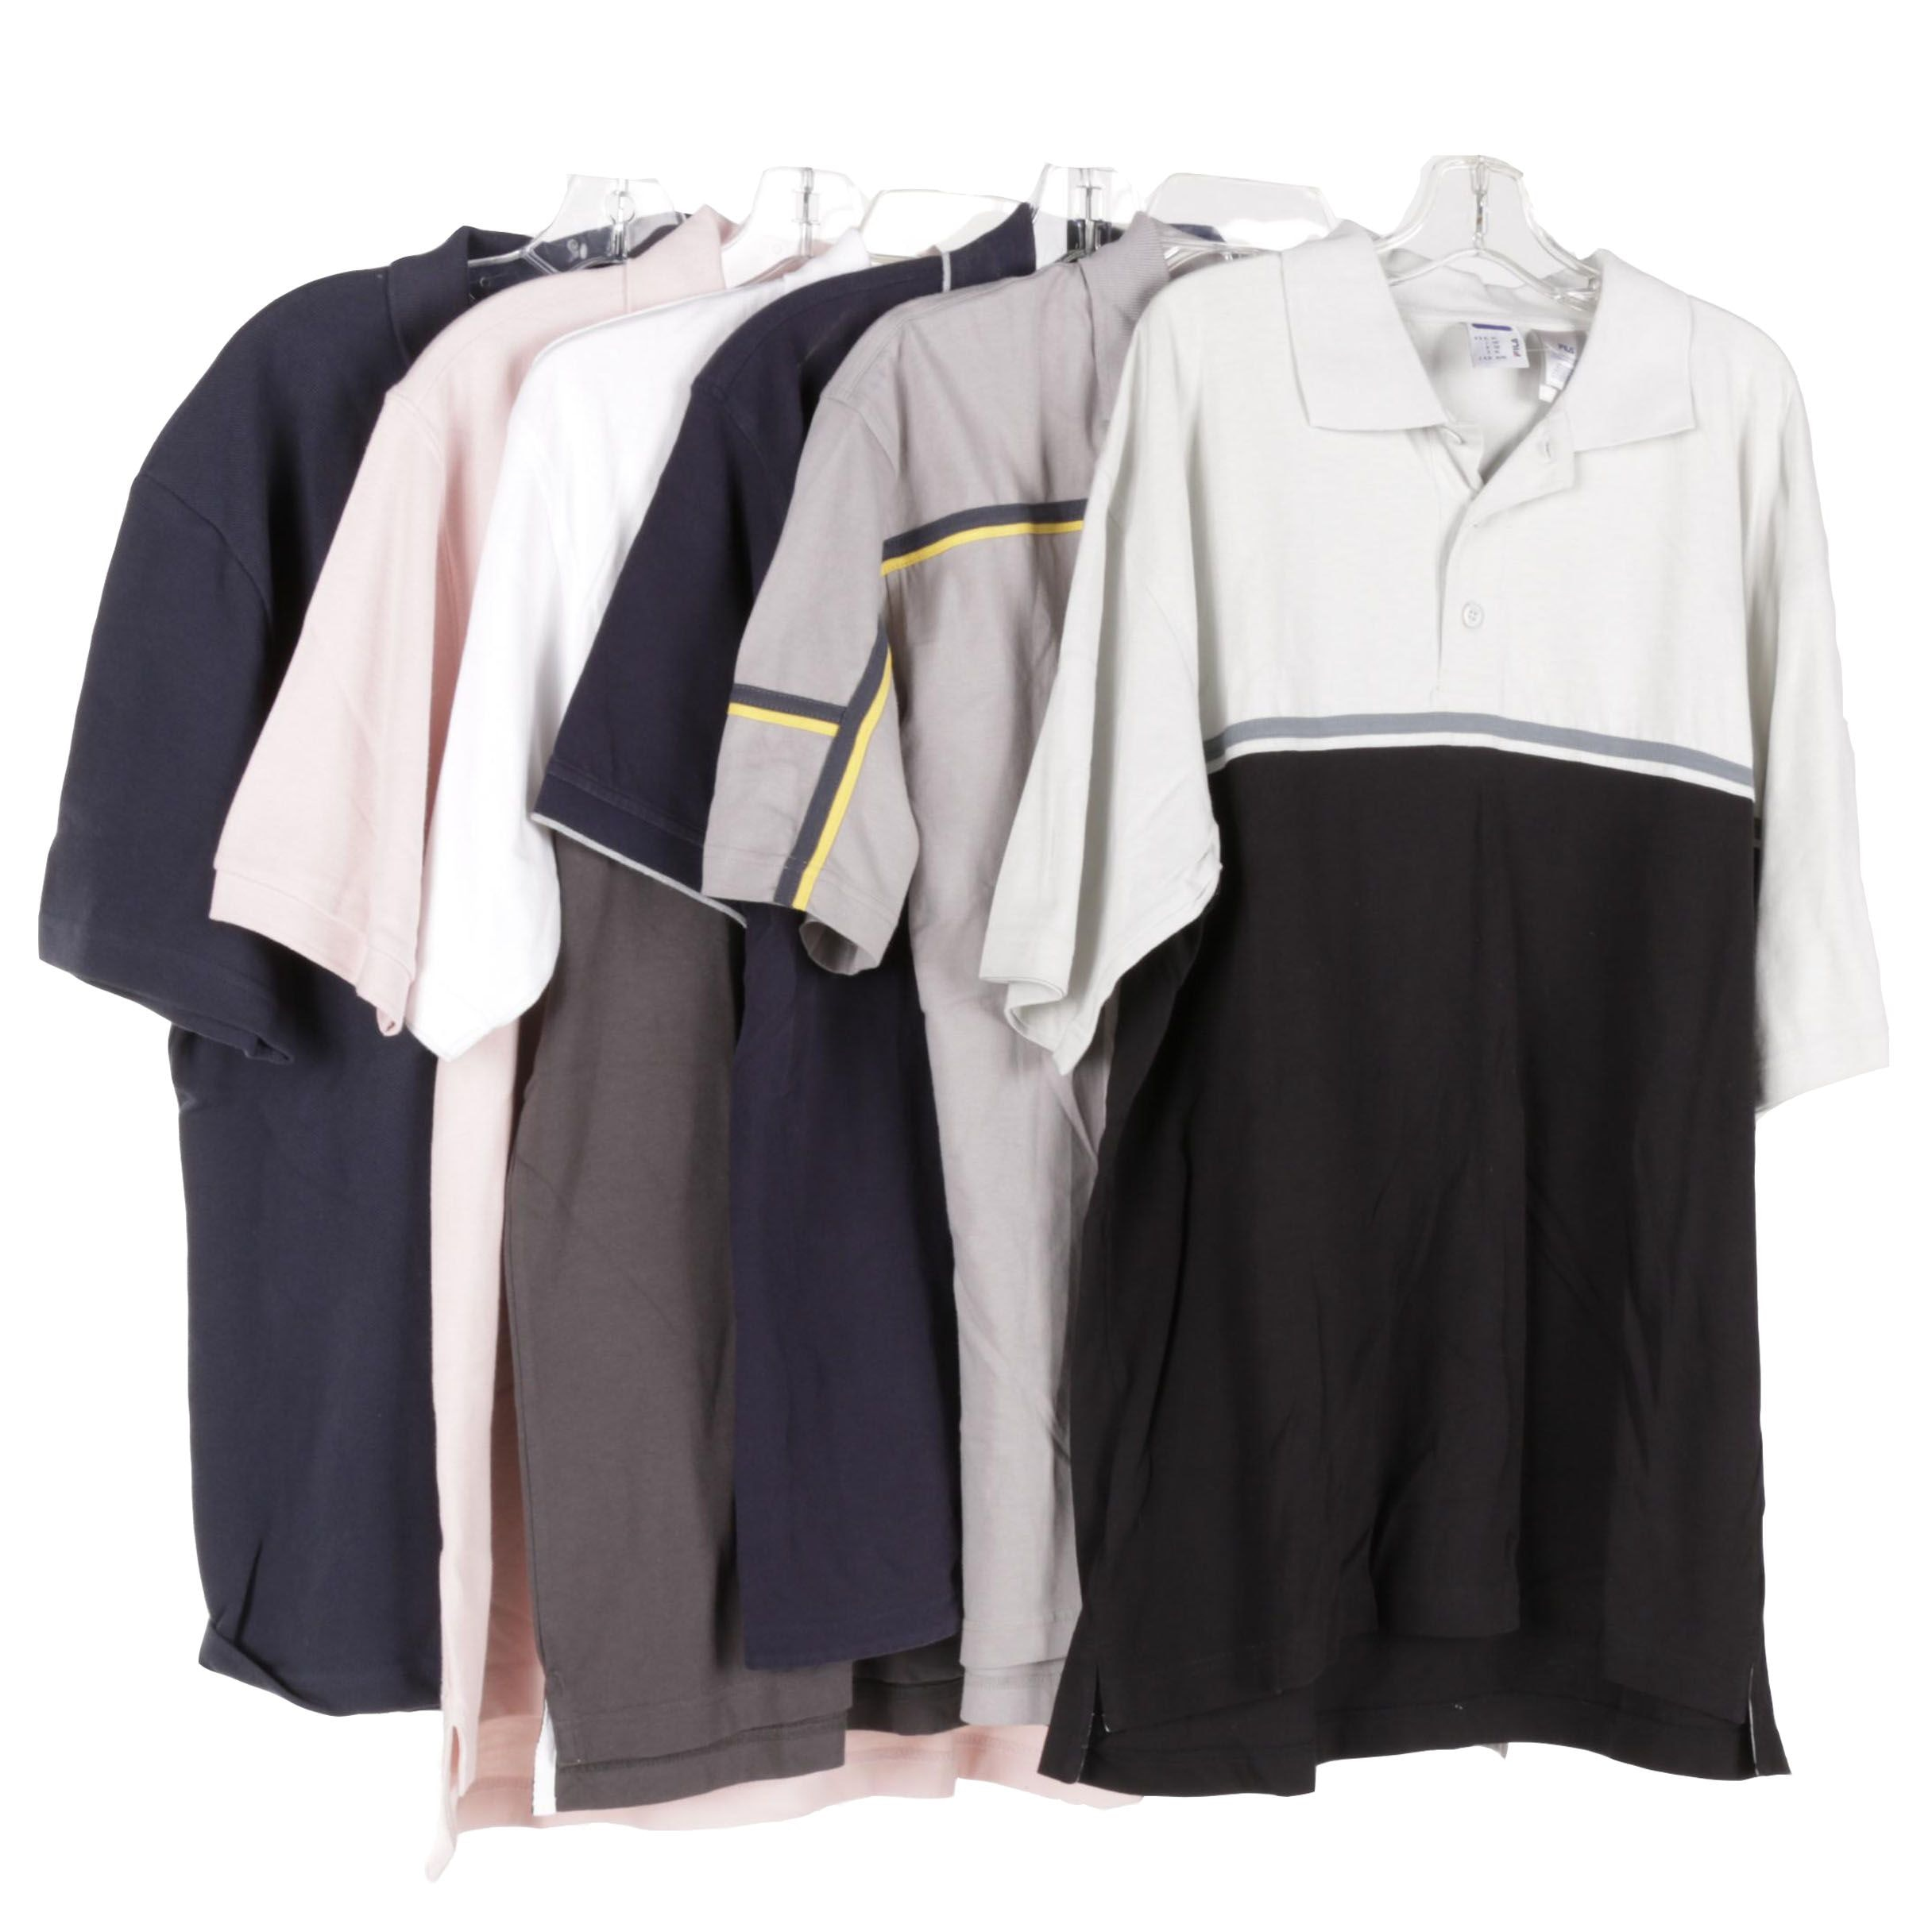 Men's Polo Style Shirts Including Chaps